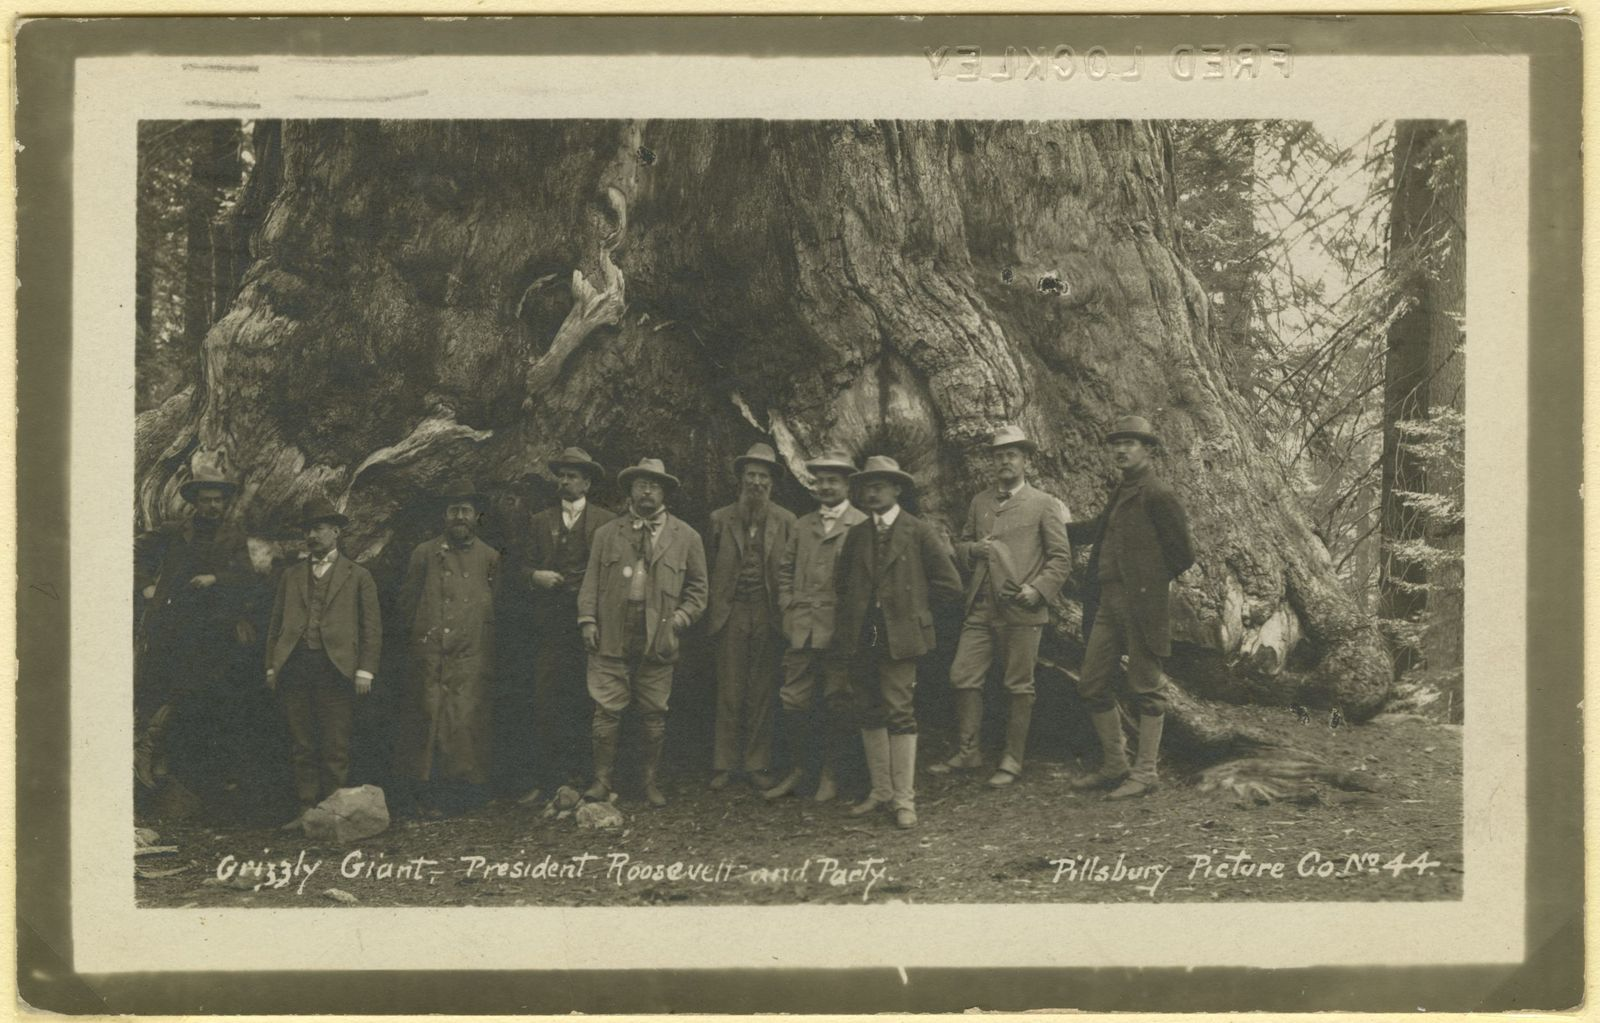 Teddy Roosevelt in Front of Sequoia_photograph of image.jpg